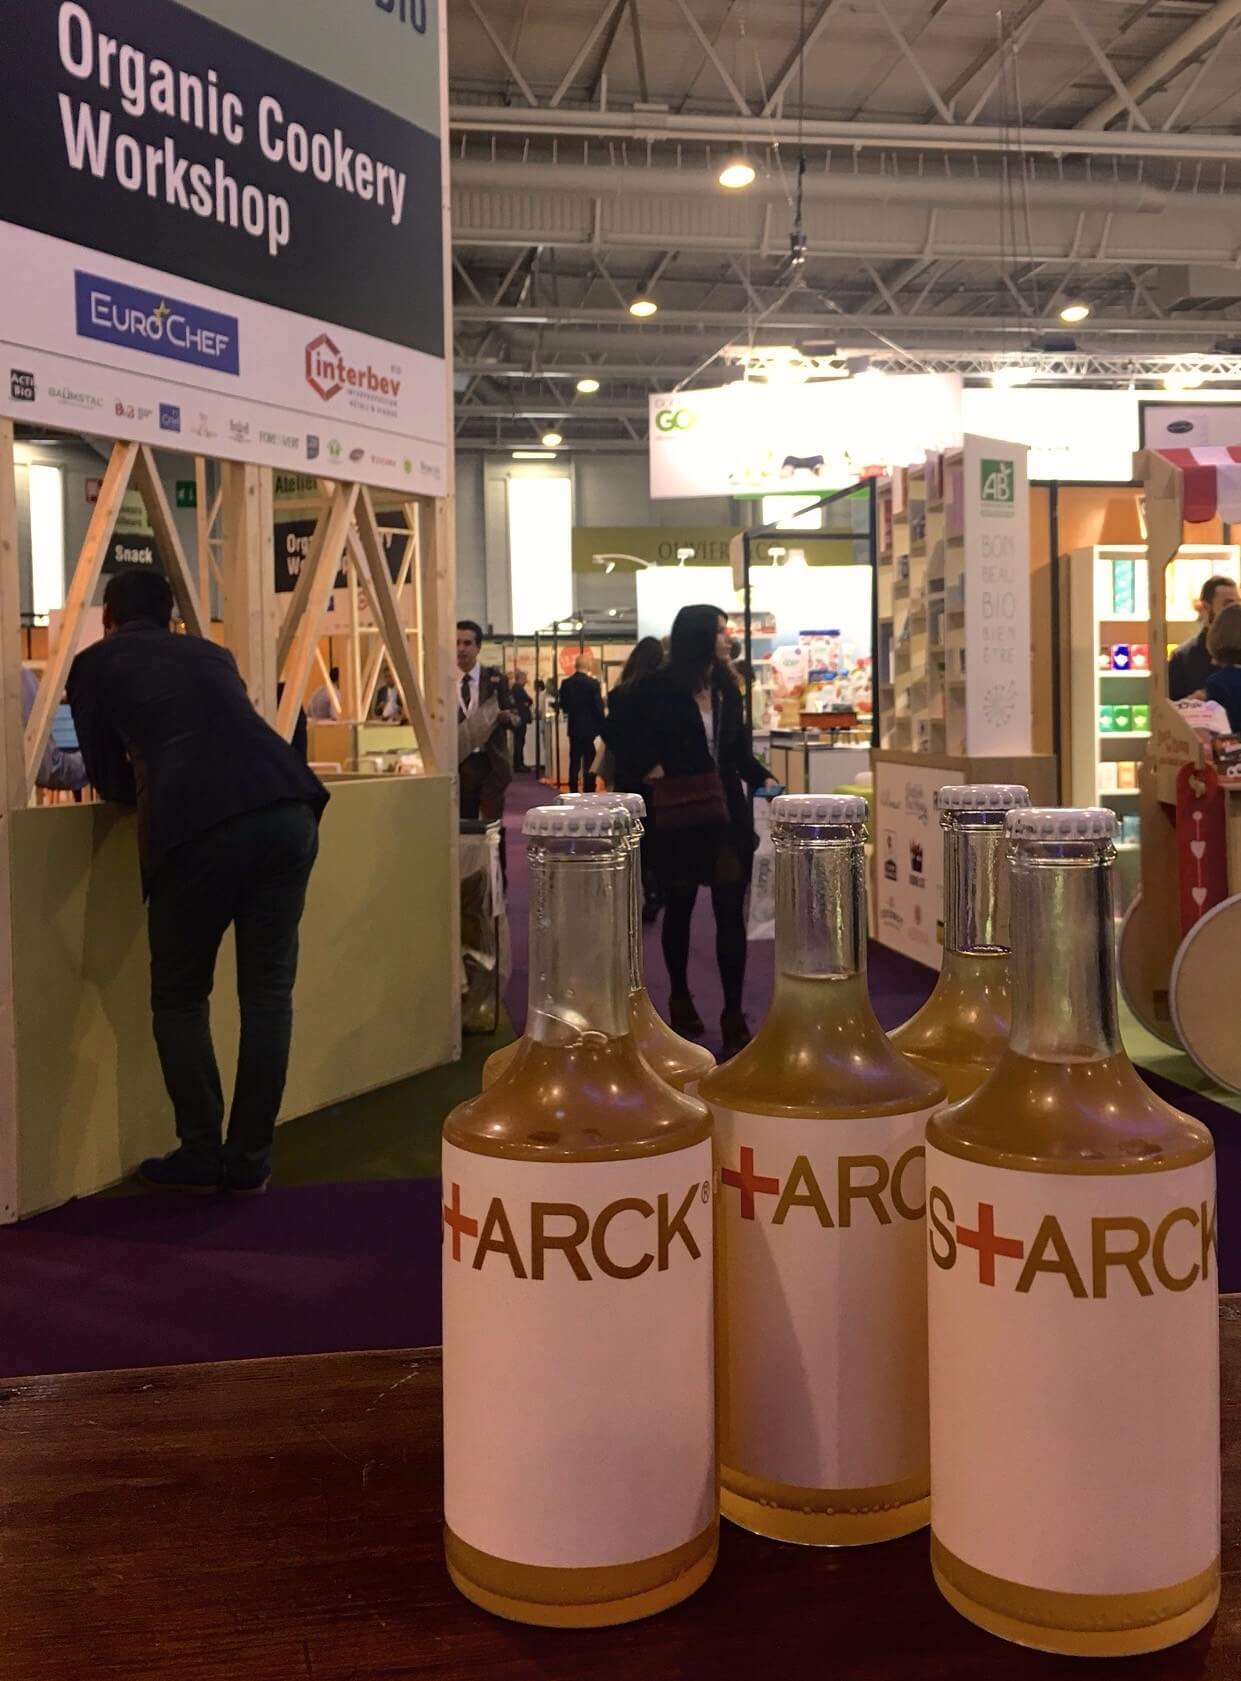 STARCK BEER at Natexpo 2017 the International Trade Show for Organic Products in Paris